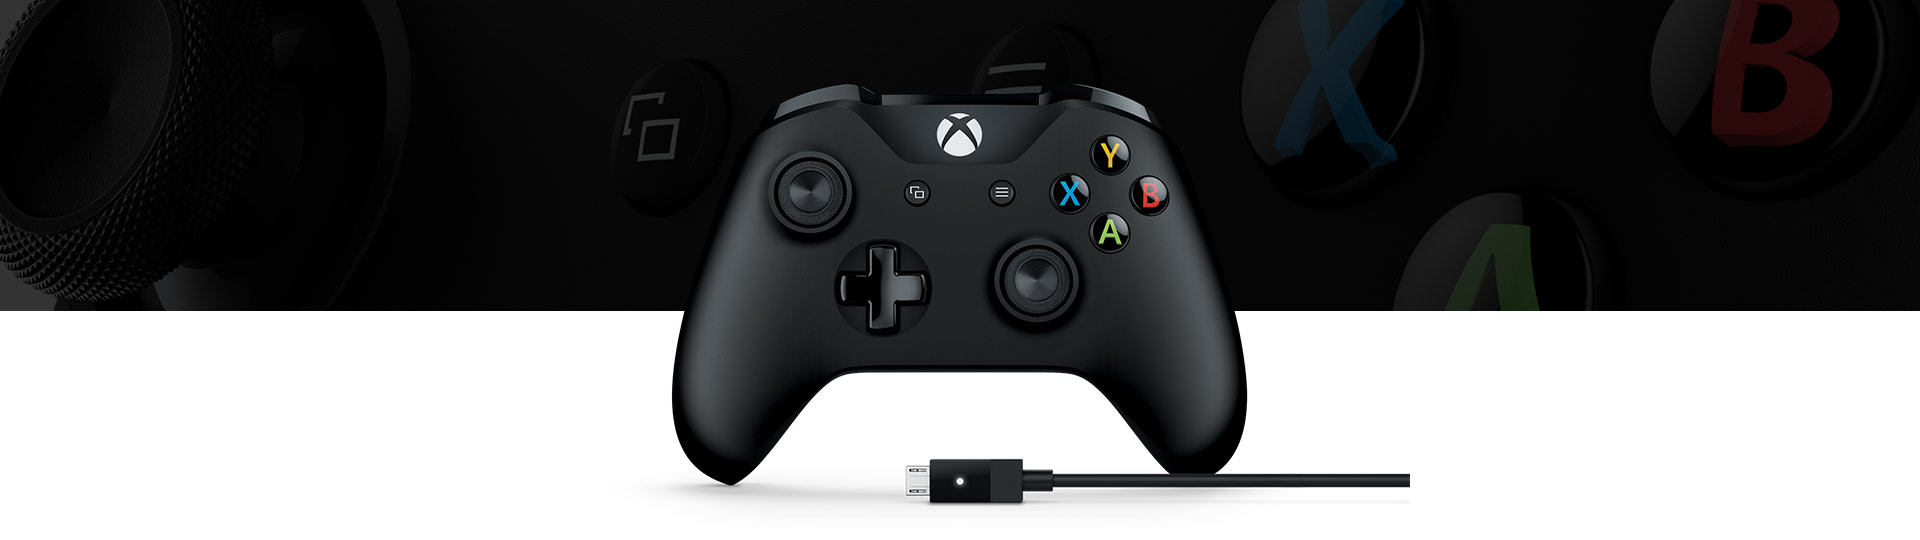 Xbox Controller plus Cable for Windows